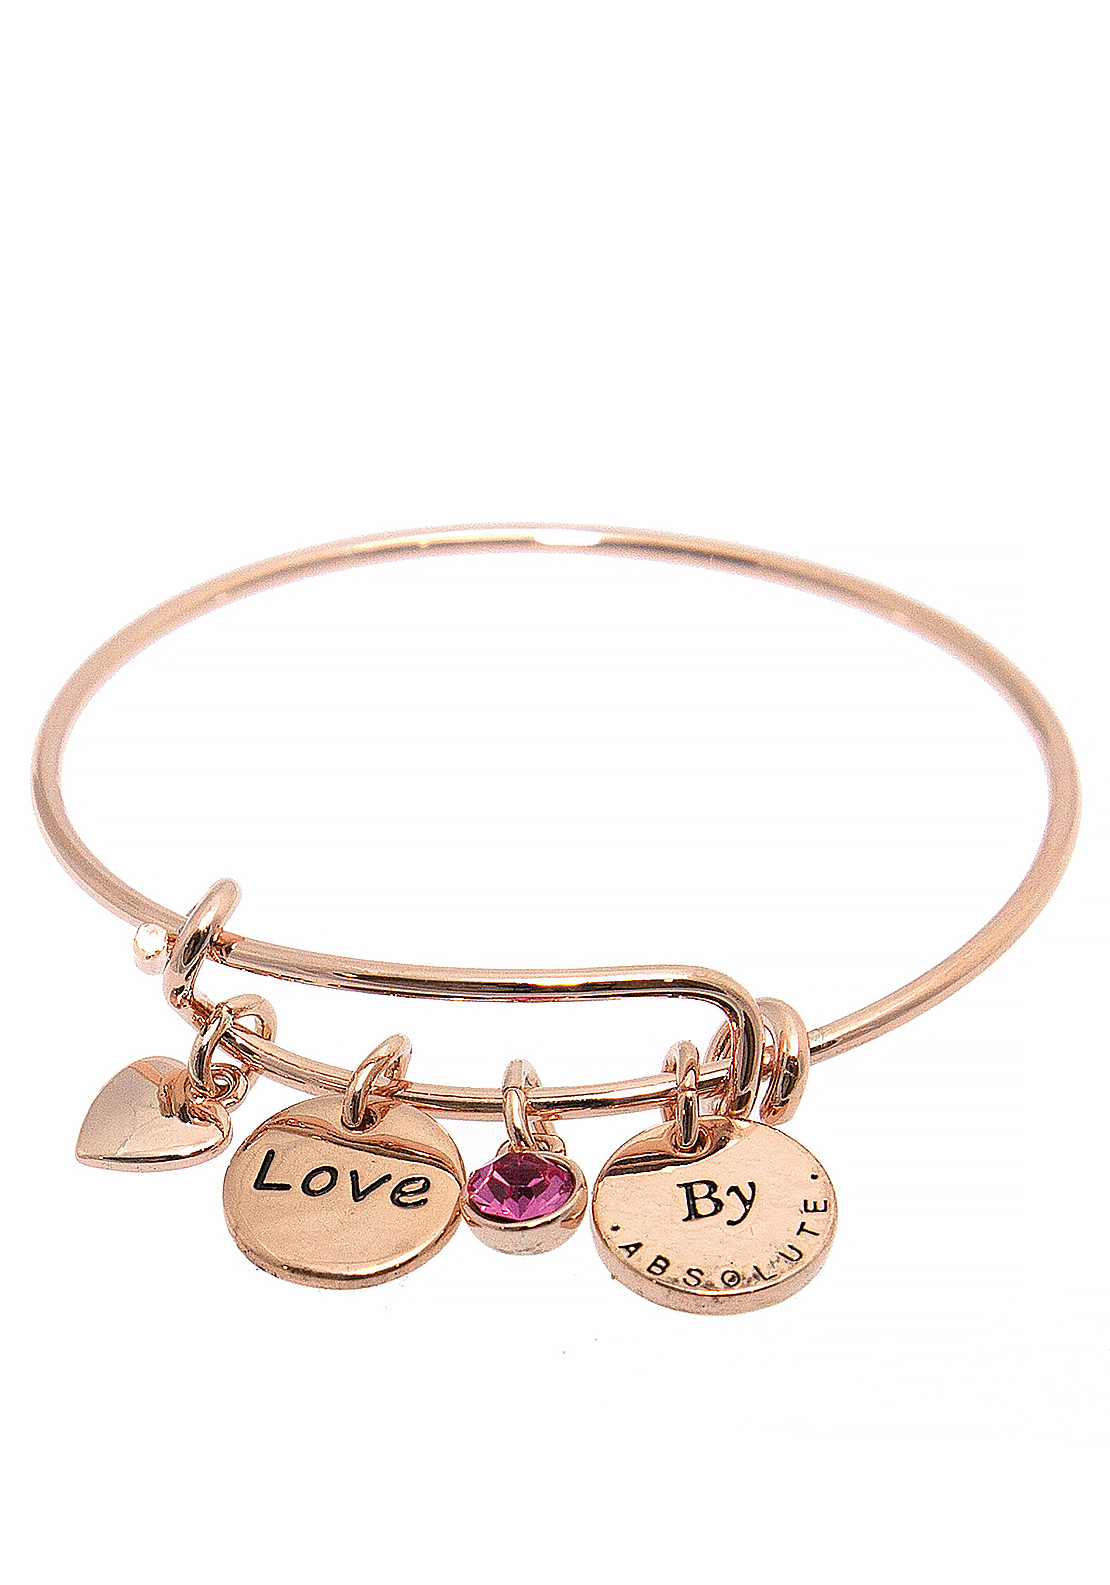 Absolute Jewellery Girls Love Charm Bangle, Rose Gold